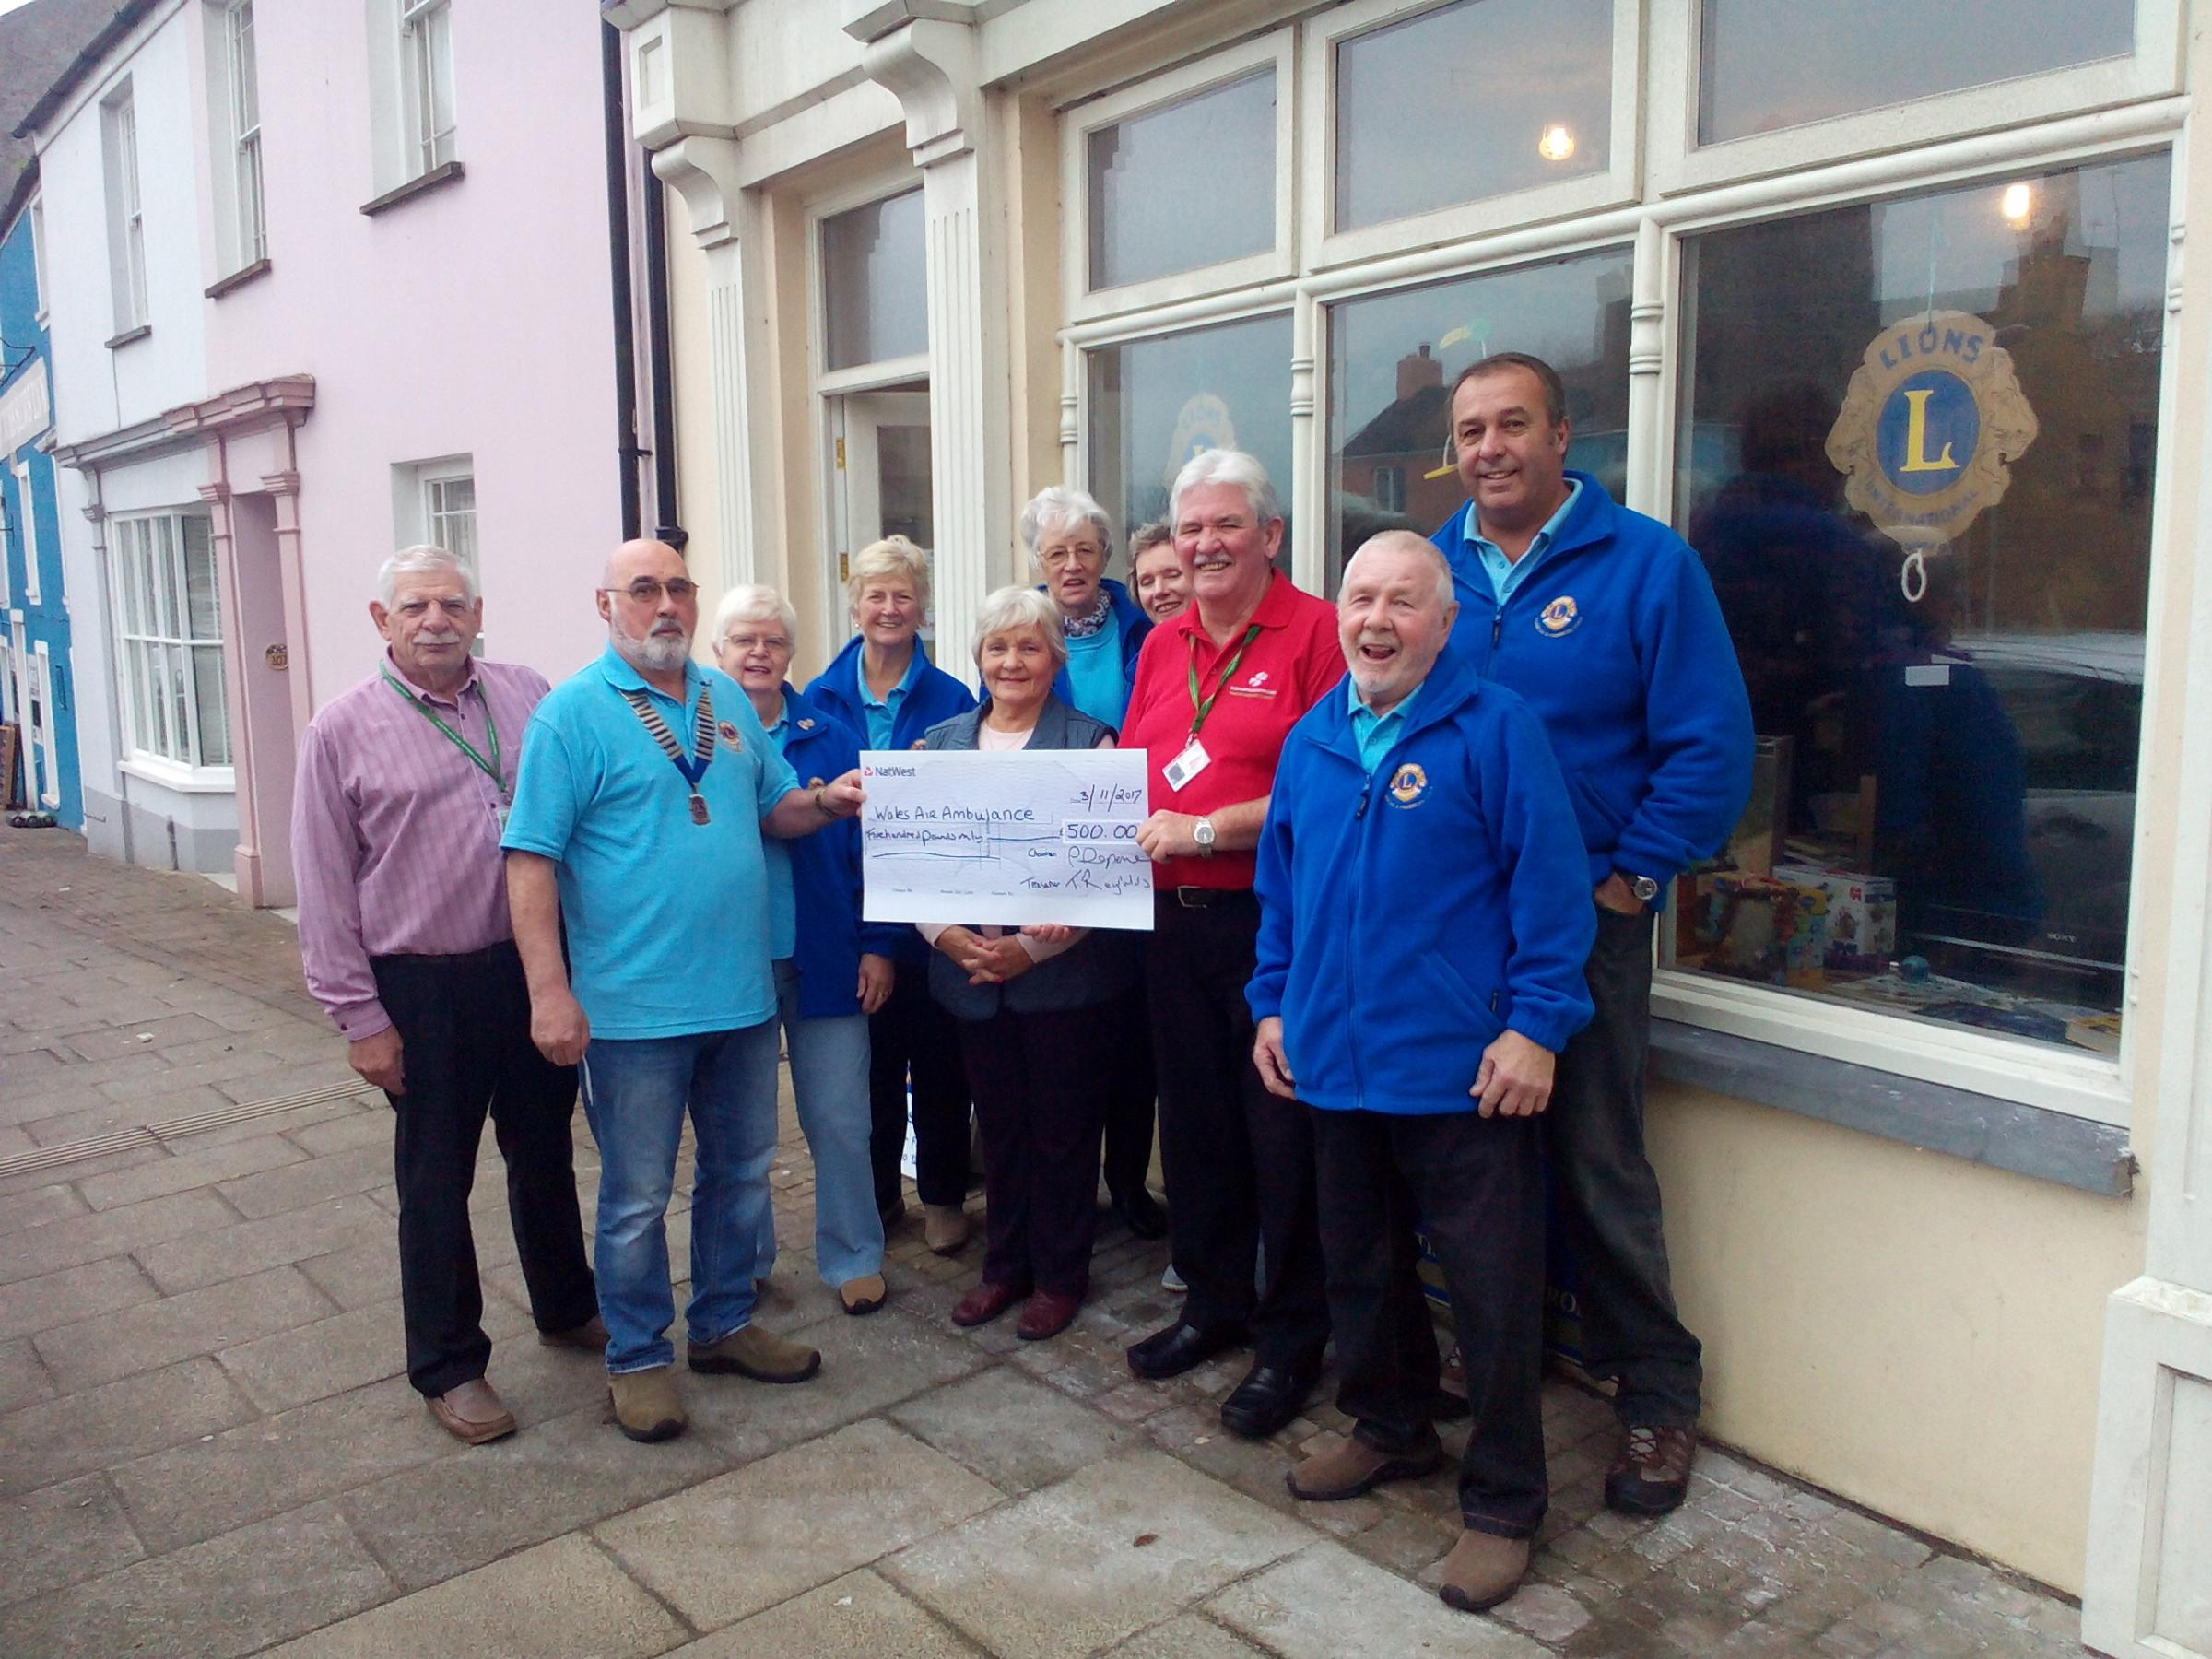 Pembroke and Pembroke Dock Lions President Peter Deponeo is pictured presenting a cheque for £500 to Wales Air Ambulance representative Tony Key OBE.